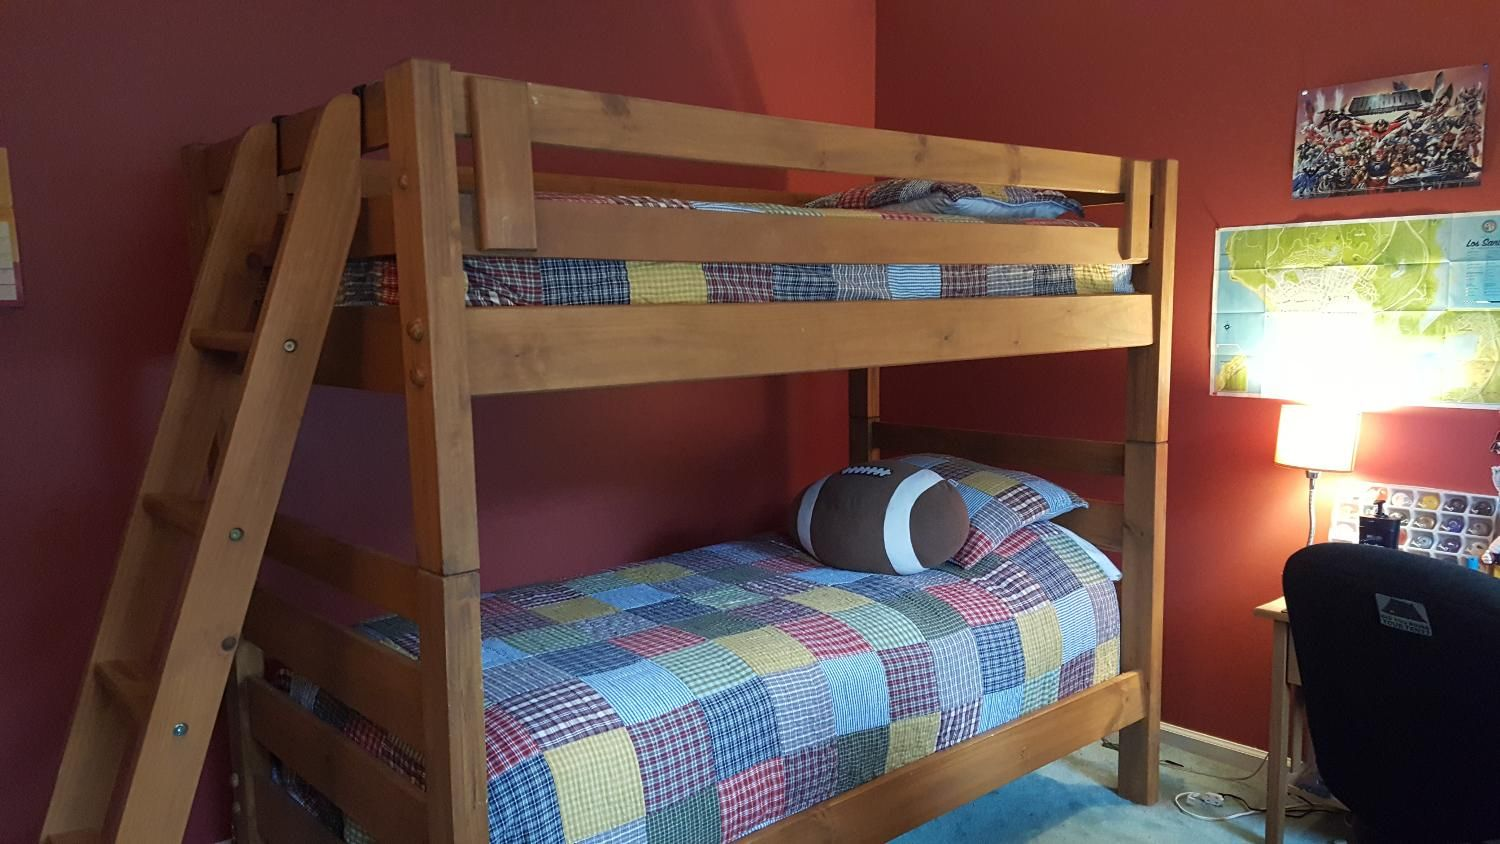 70 Pier One Kids Bunk Beds Interior Design Master Bedroom Check More At Http